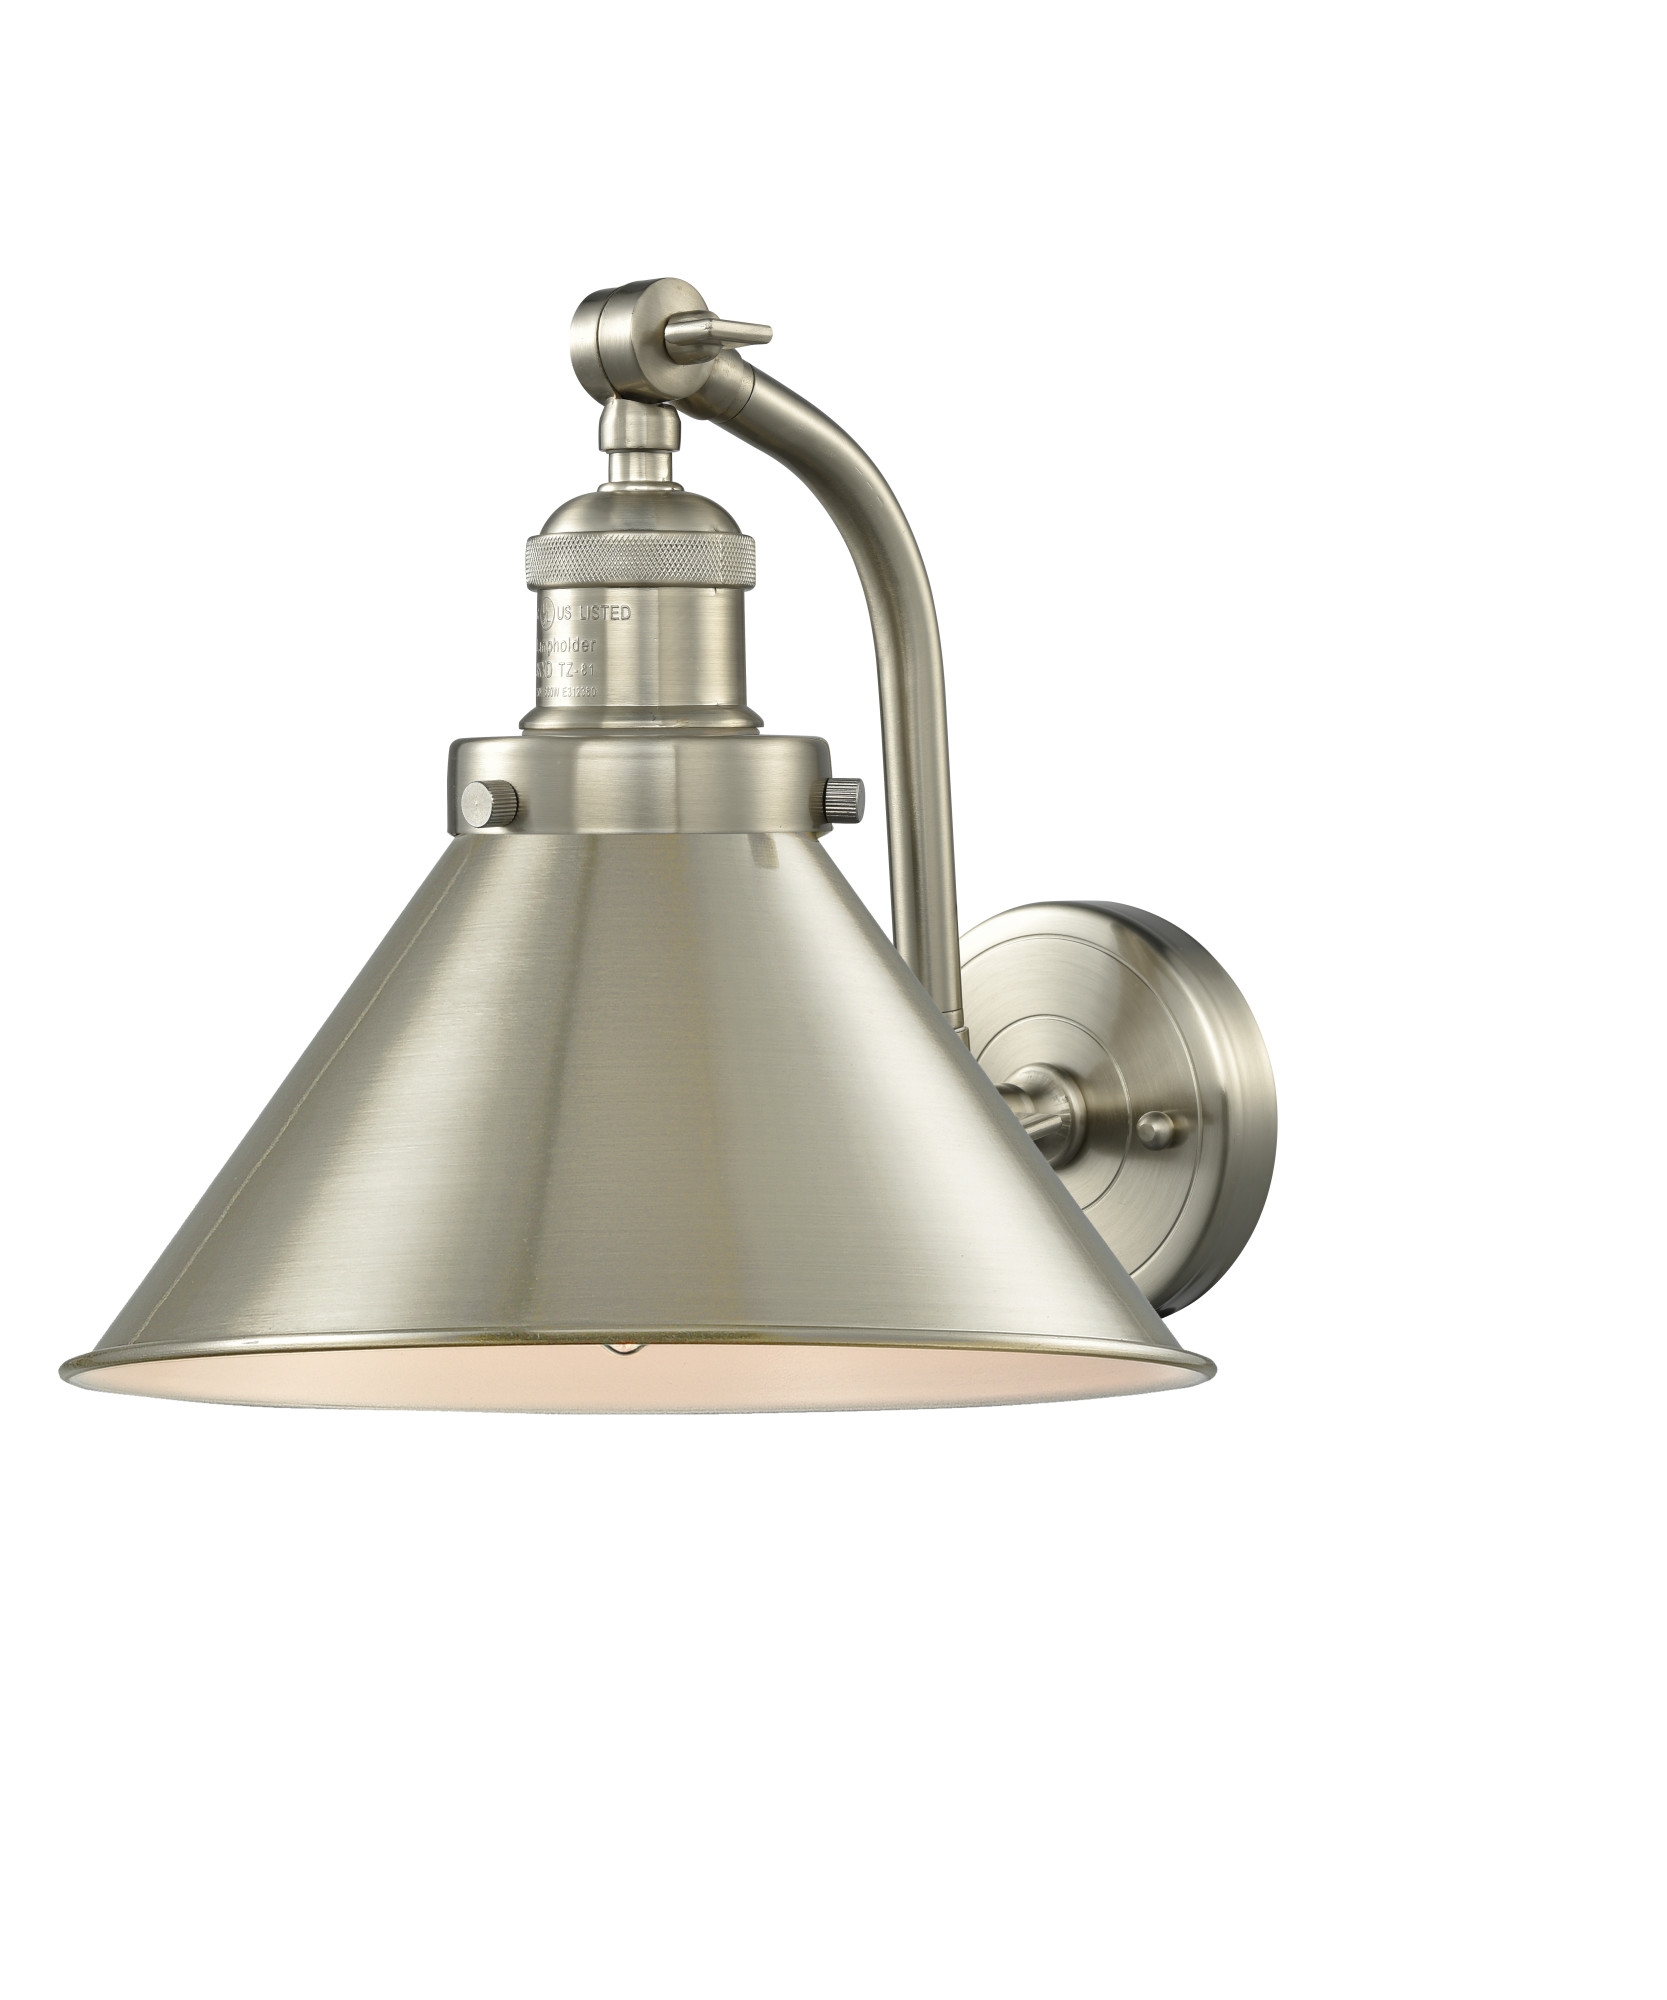 Innovations Lighting 515-1W Briarcliff Briarcliff 1 Light ... on Height Of Bathroom Sconce Lights id=29388